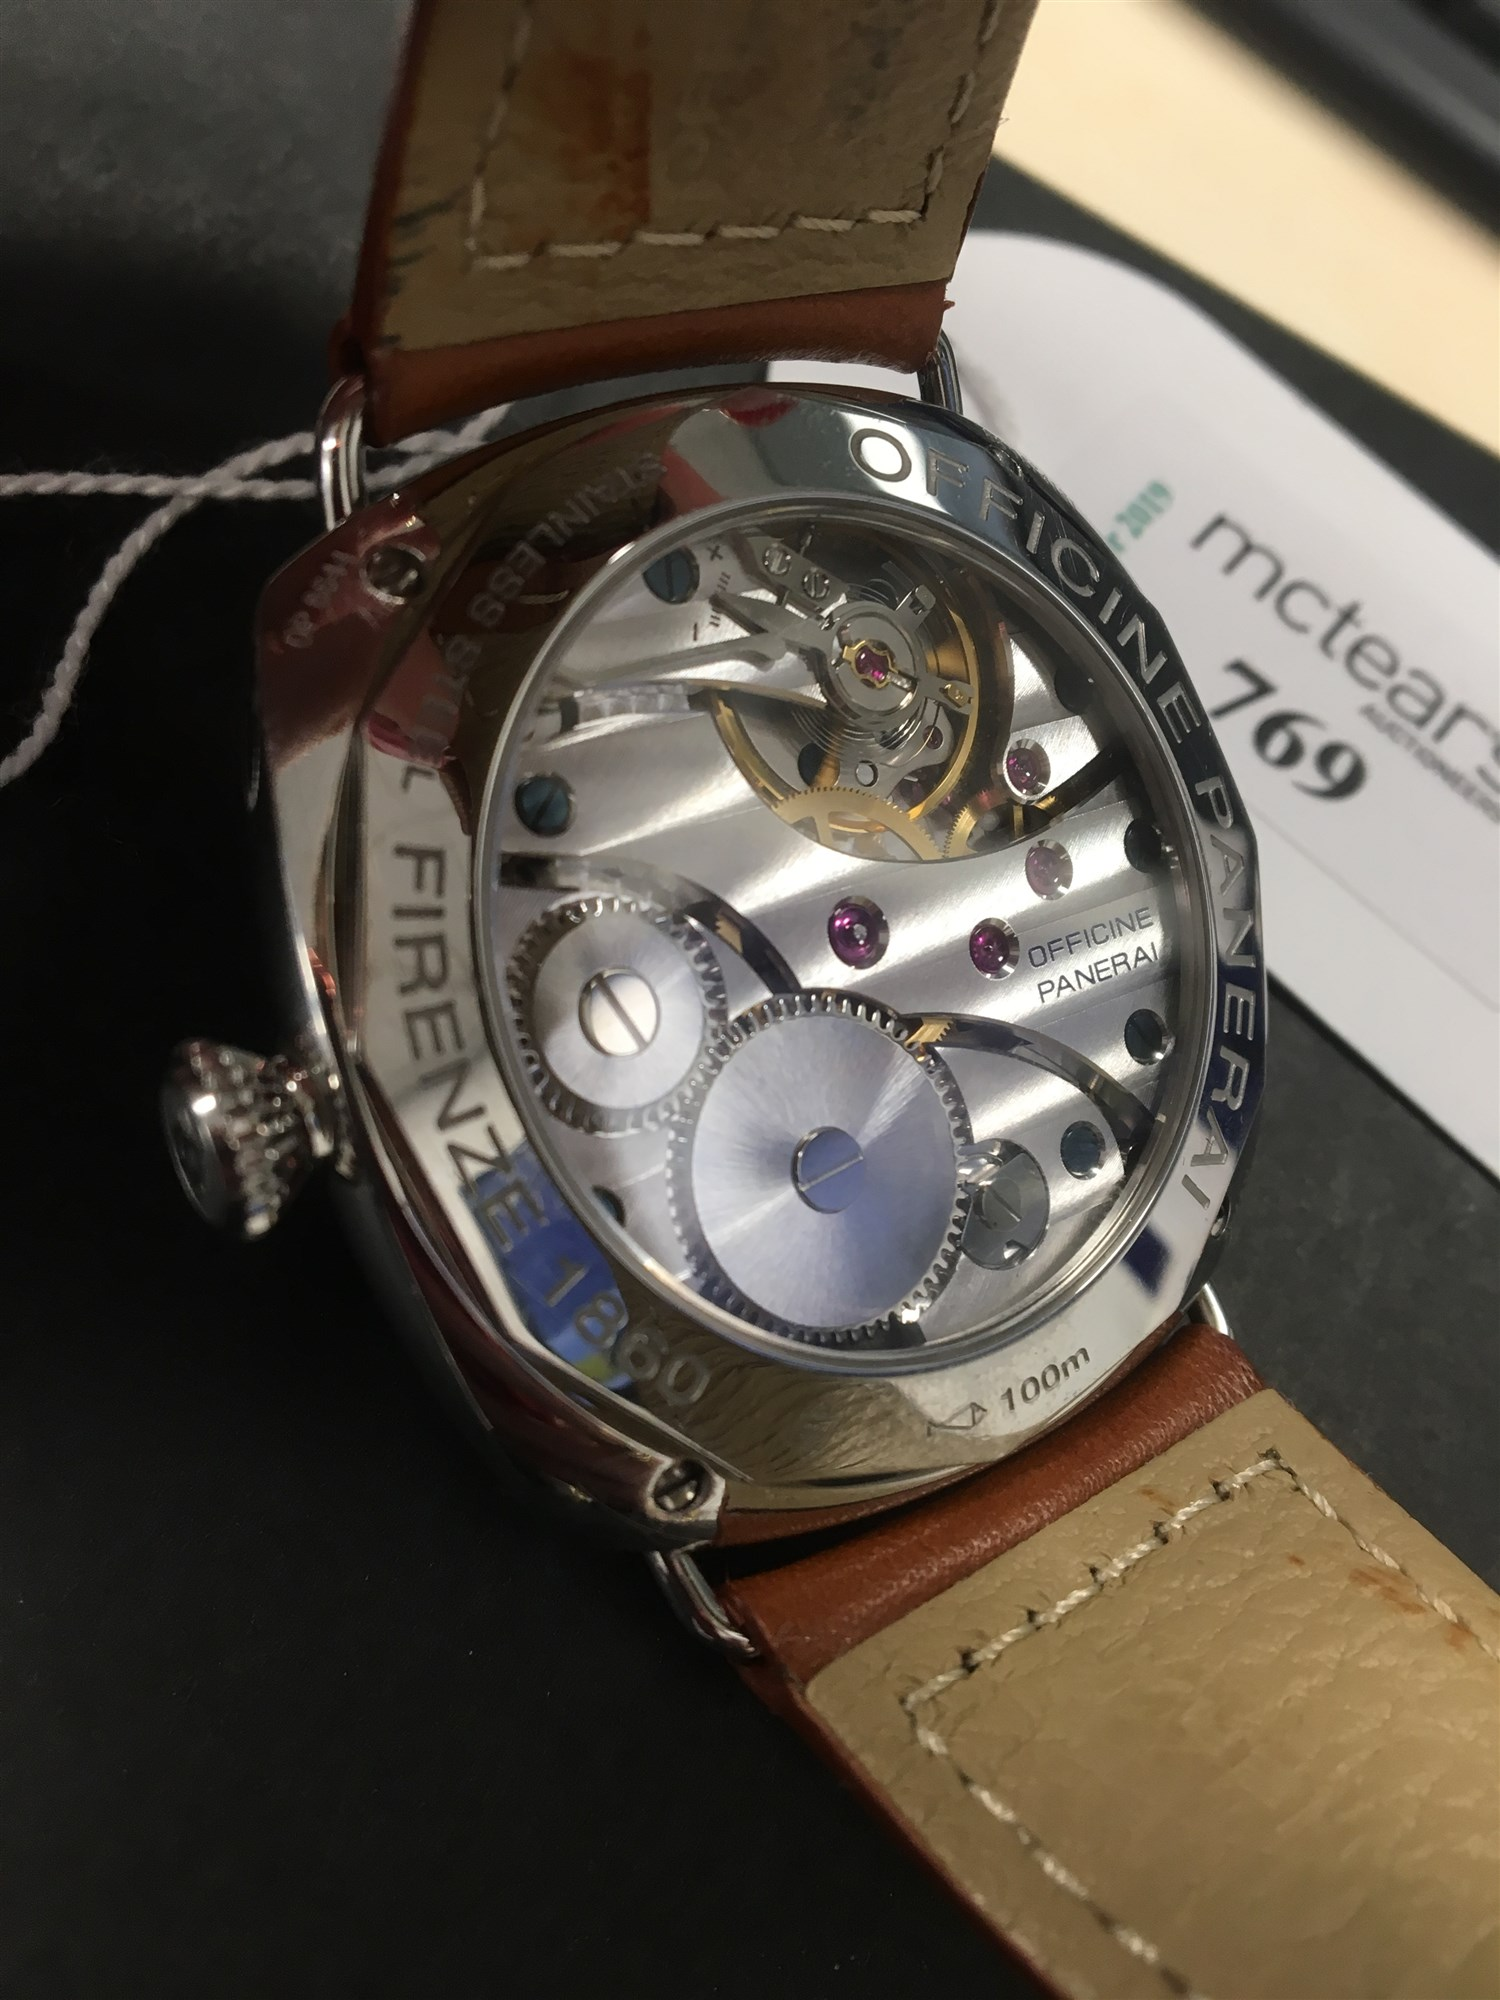 Lot 759 - A GENTLEMAN'S PANERAI RADIOMIR WATCH